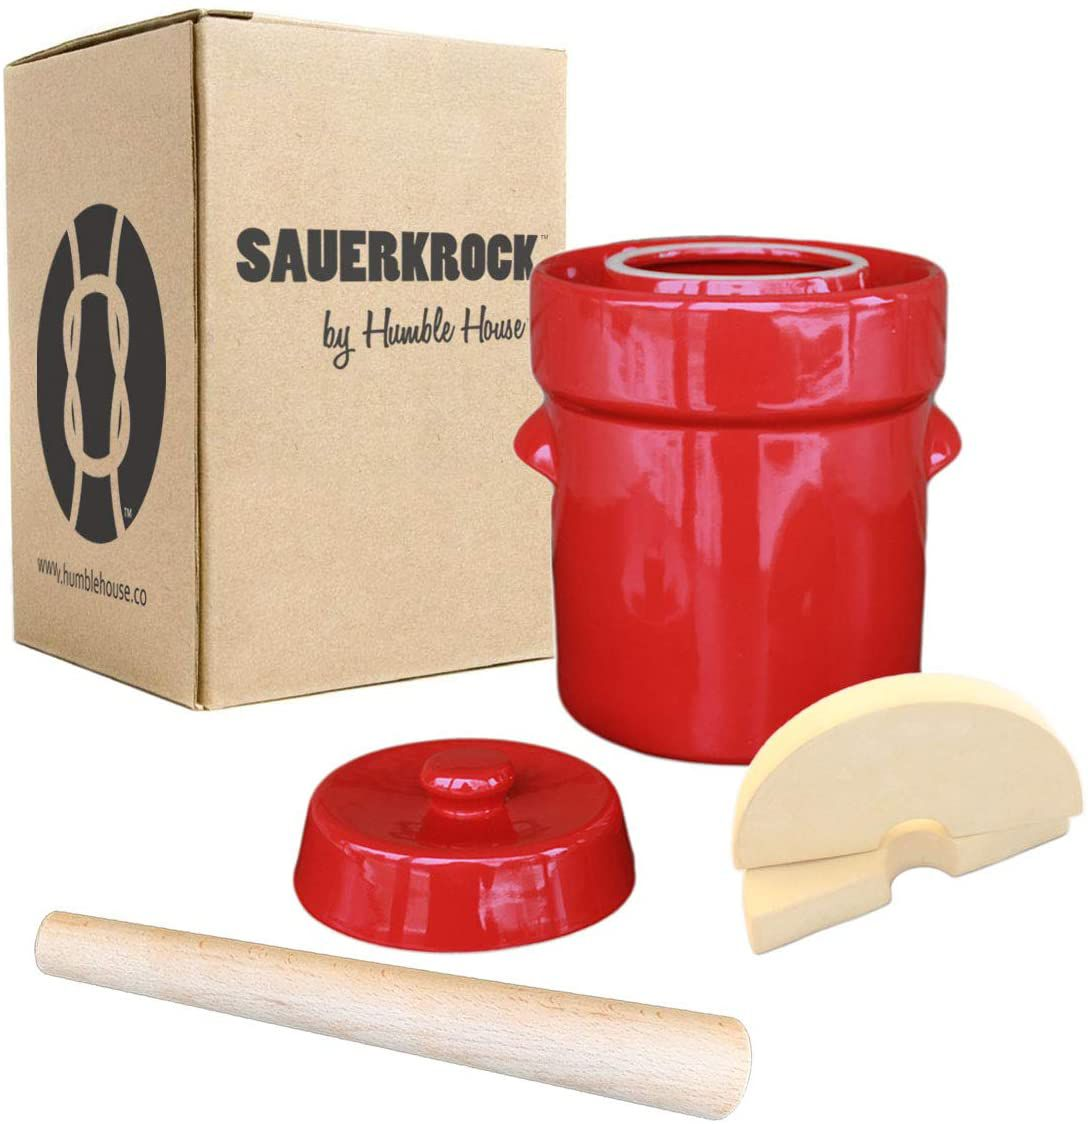 Humble House Sauerkrock with Cabbage Tamper